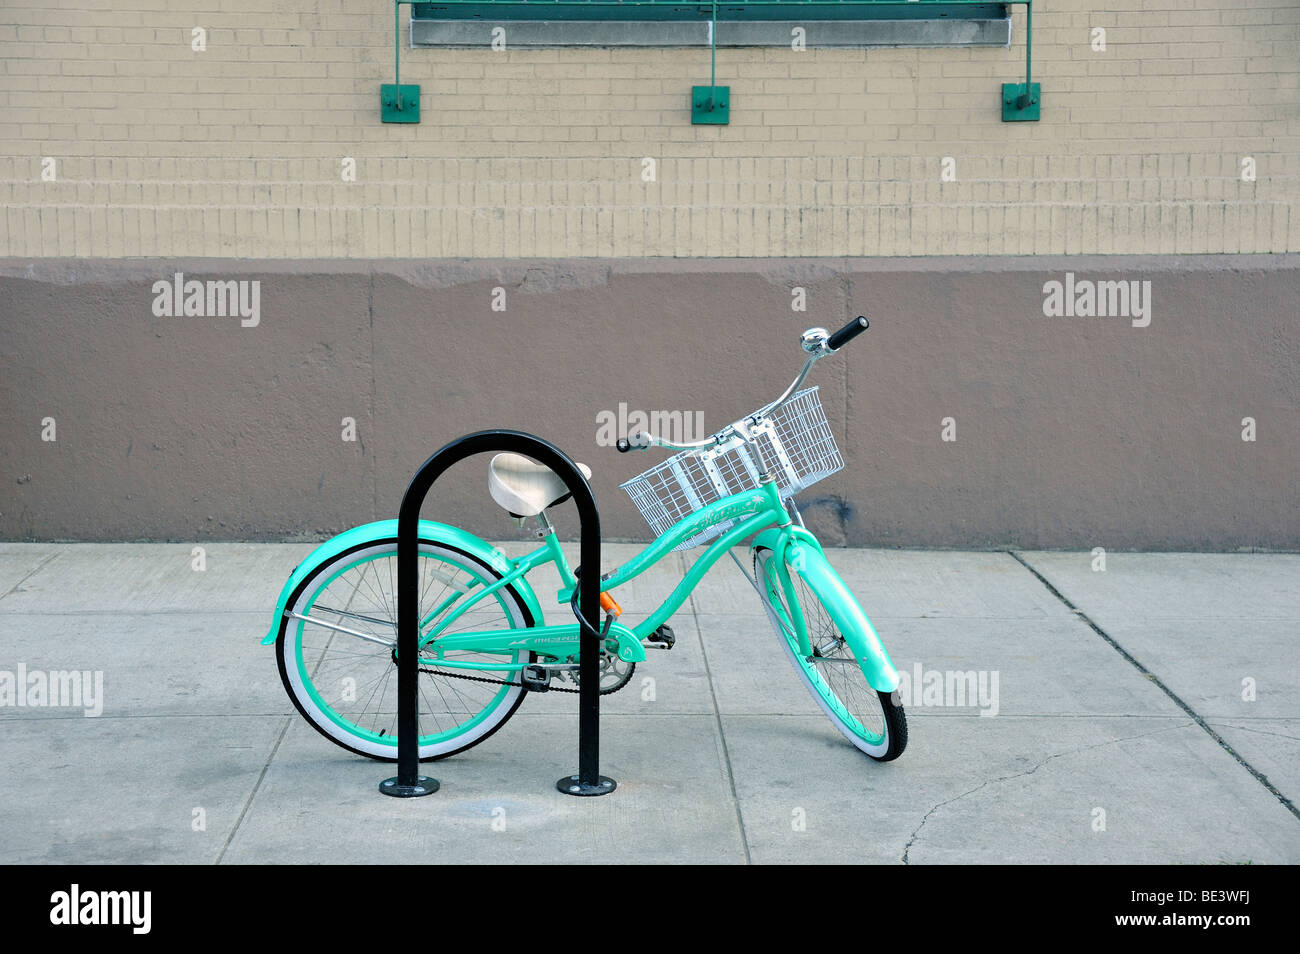 A Women S Bicycle Tied To A Bike Rake In New York City Stock Photo